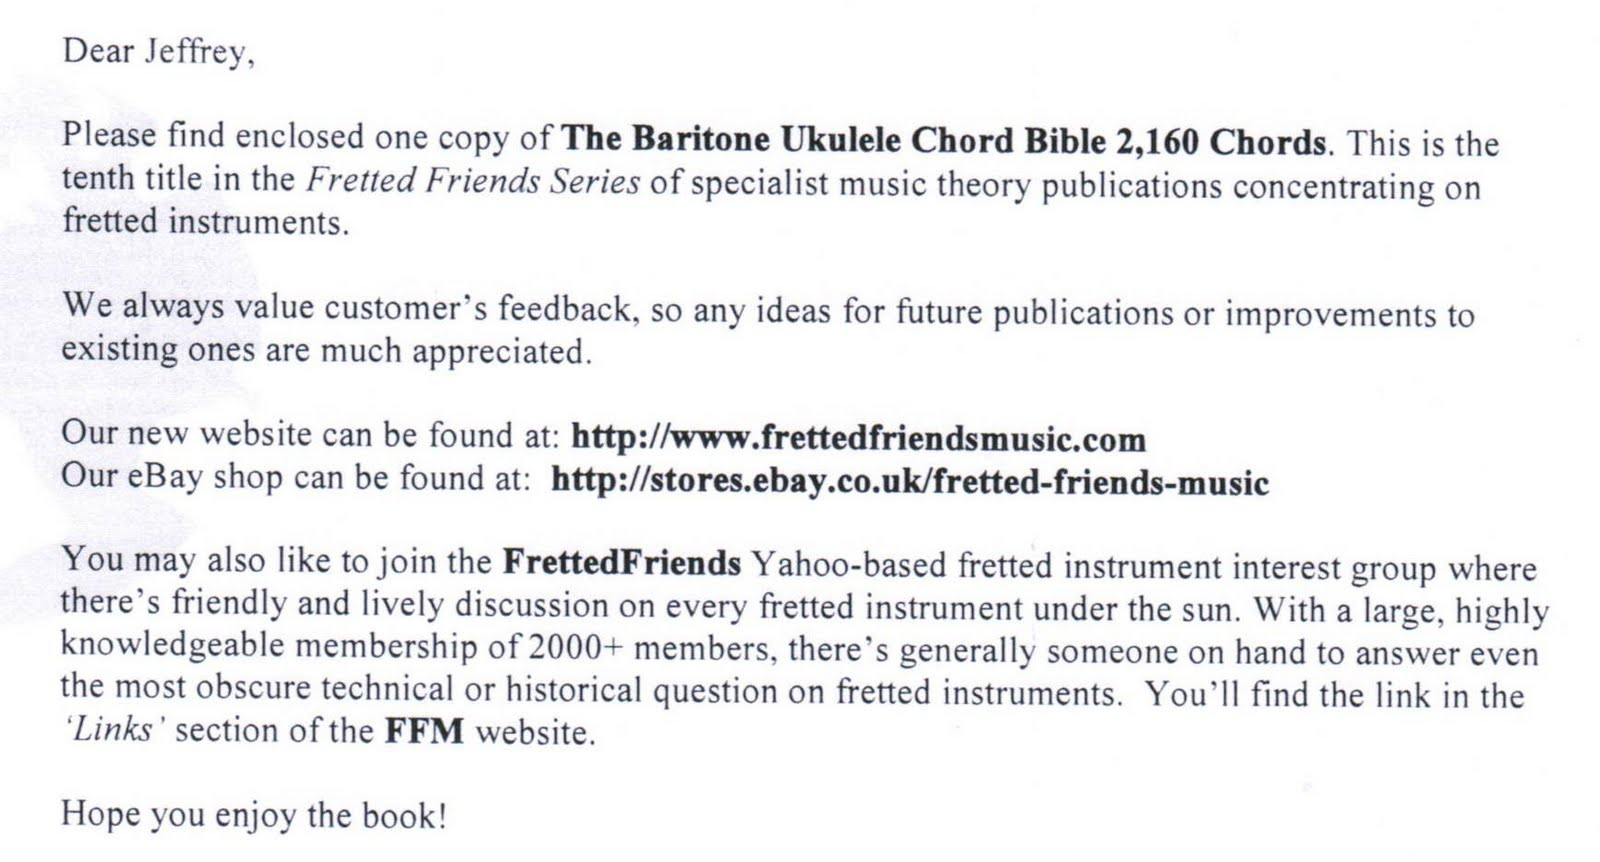 Humble Baritonics Fretted Friends The Baritone Ukulele Chord Bible